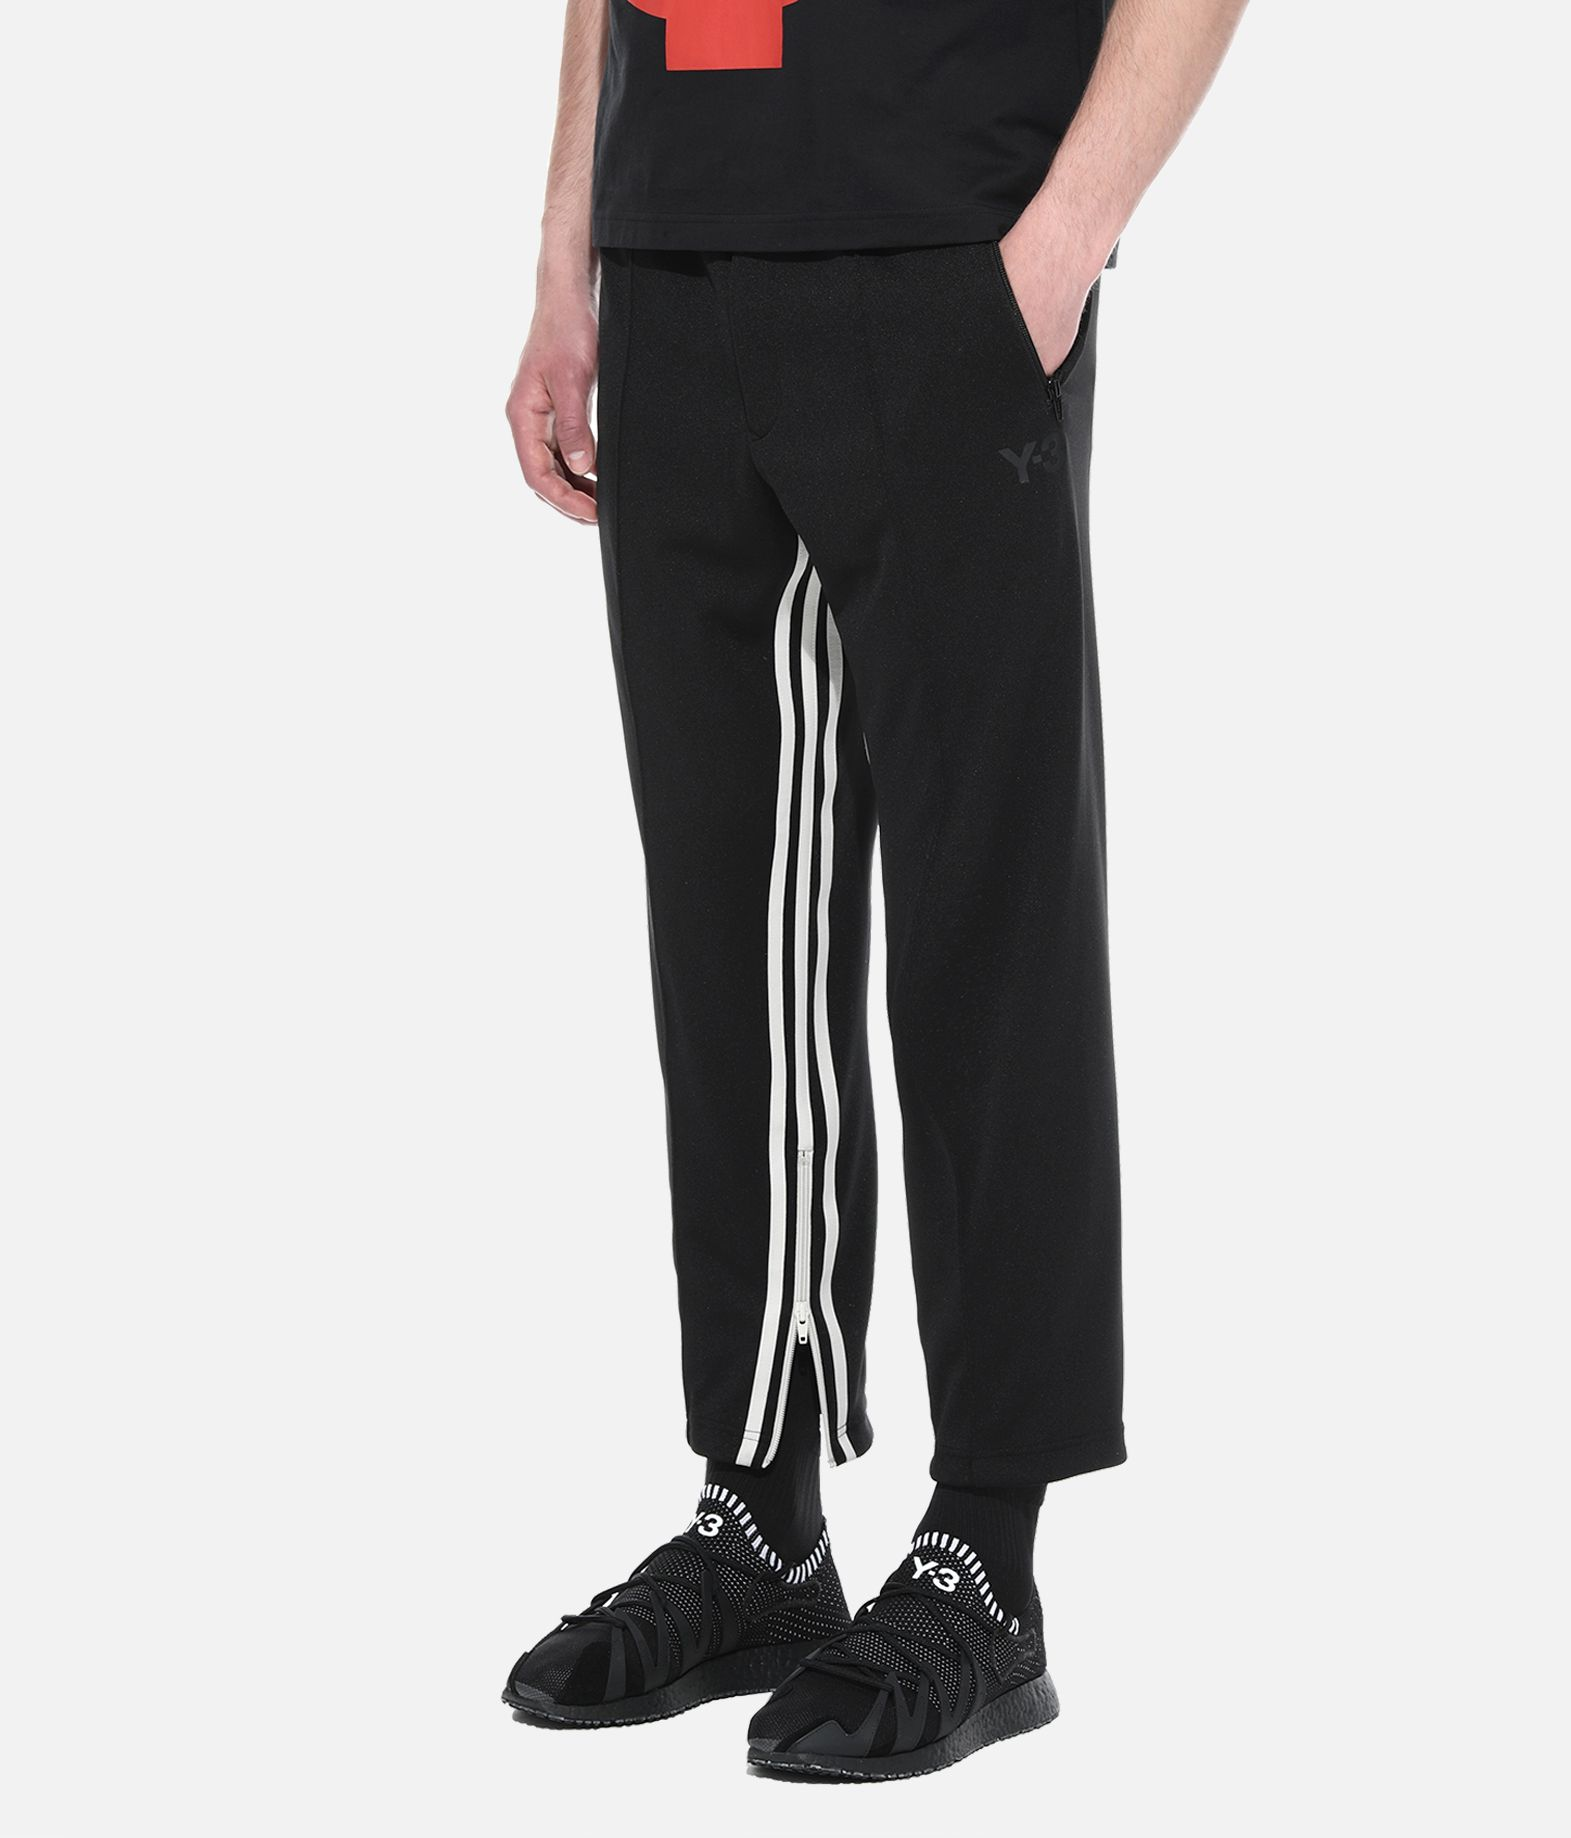 Y-3 Y-3 3-Stripes Cropped Track Pants Tracksuit pants Man e